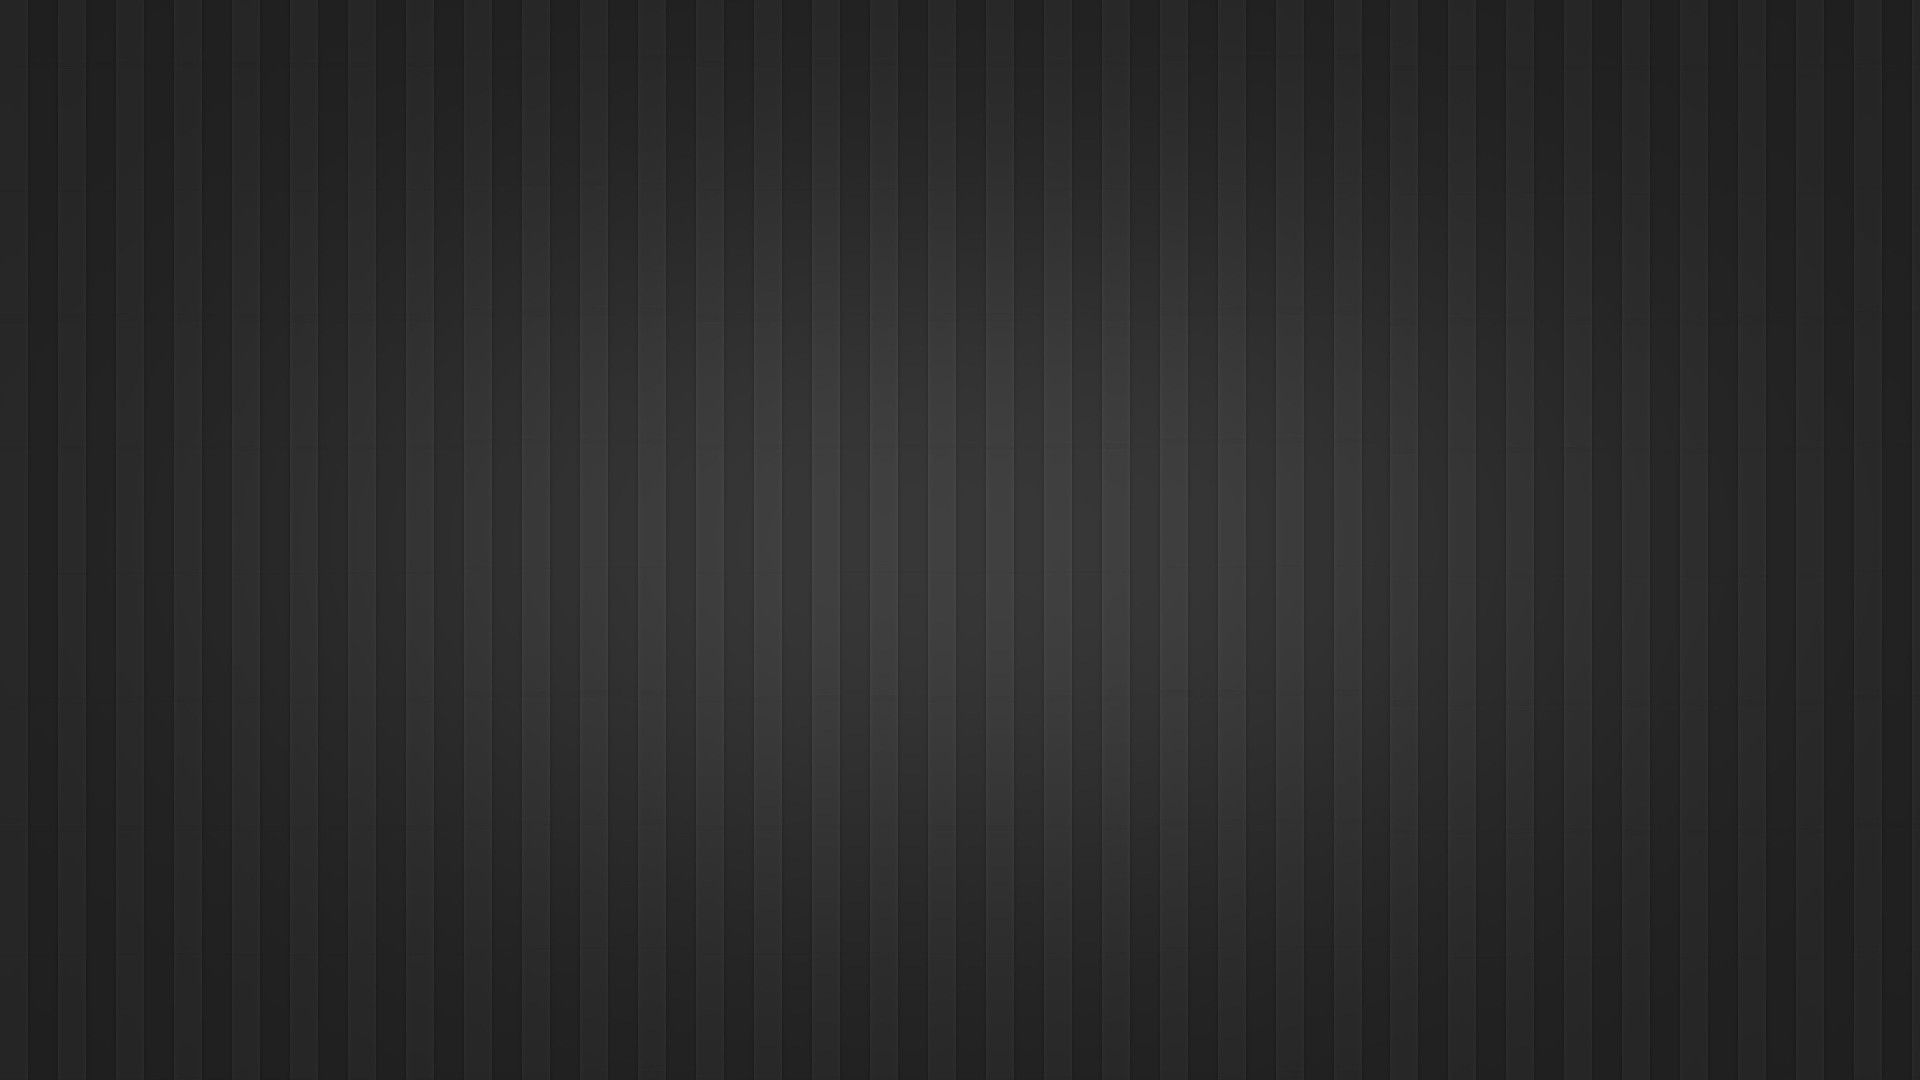 Dark Grey Wallpaper 2d1 Hd Wallpaper Blue Wallpaper Abstract